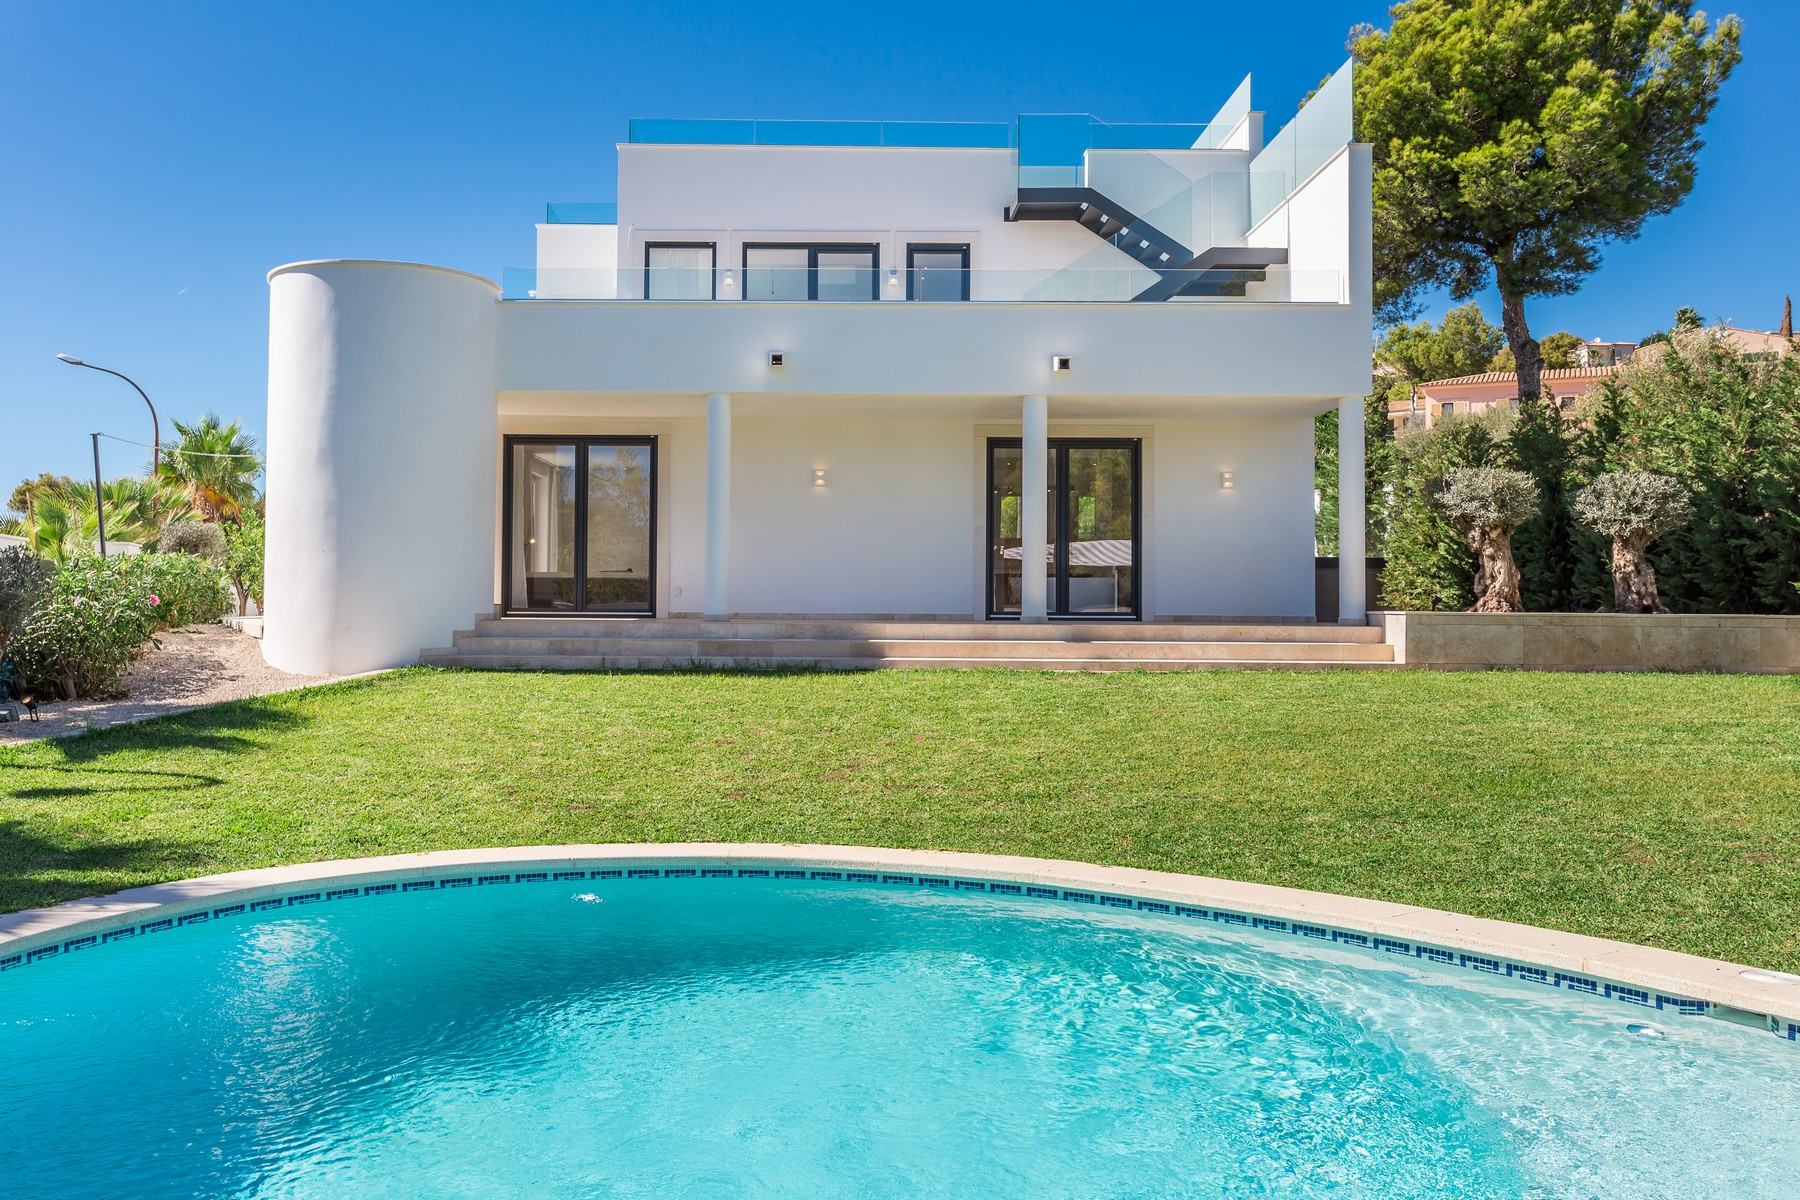 Maison unifamiliale pour l Vente à Newly built villa with sea views in Santa POnsa Santa Ponsa, Majorque, 07180 Espagne